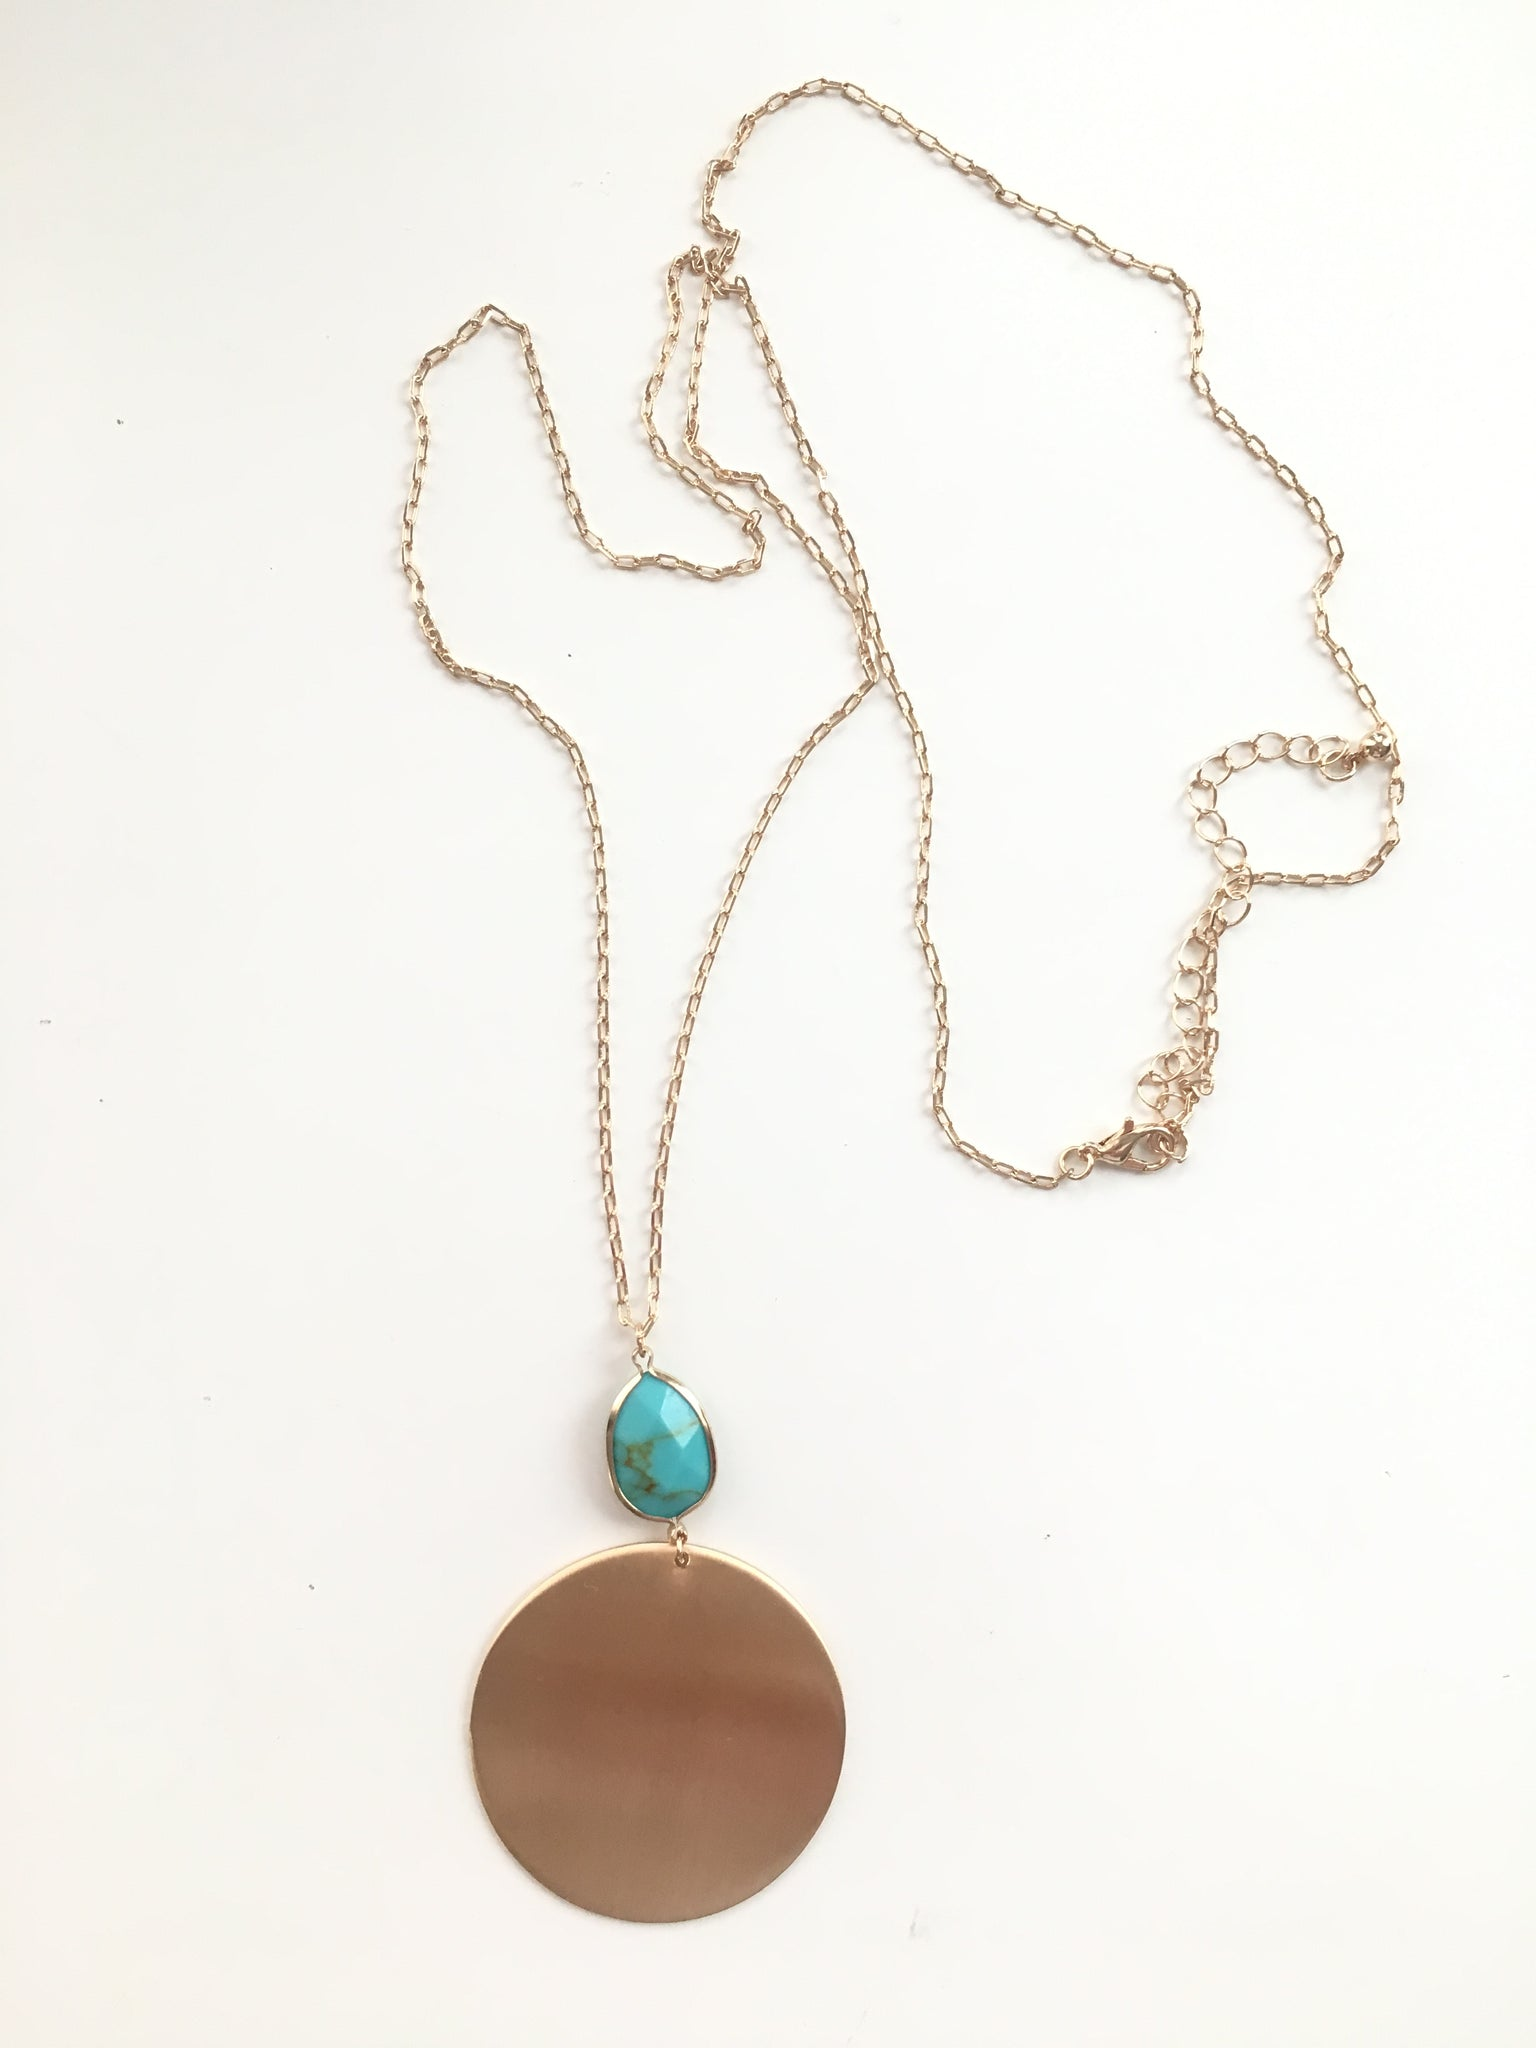 Long Gold Circle Necklace with Turquoise Stone